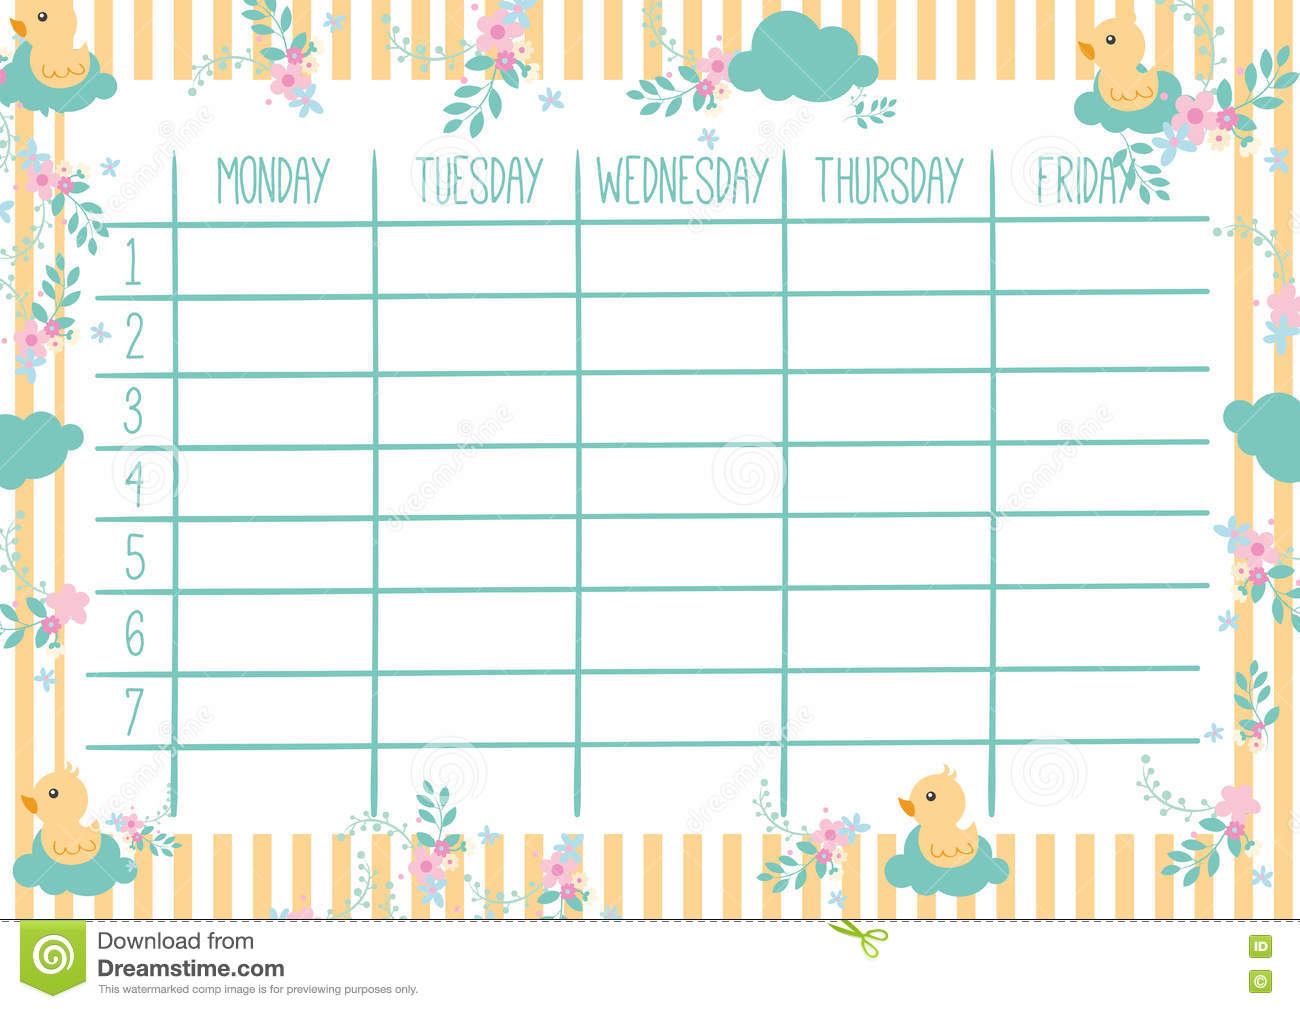 photograph regarding Cute Weekly Planners named Lovely Weekly Planner Example 76412894 - Megapixl